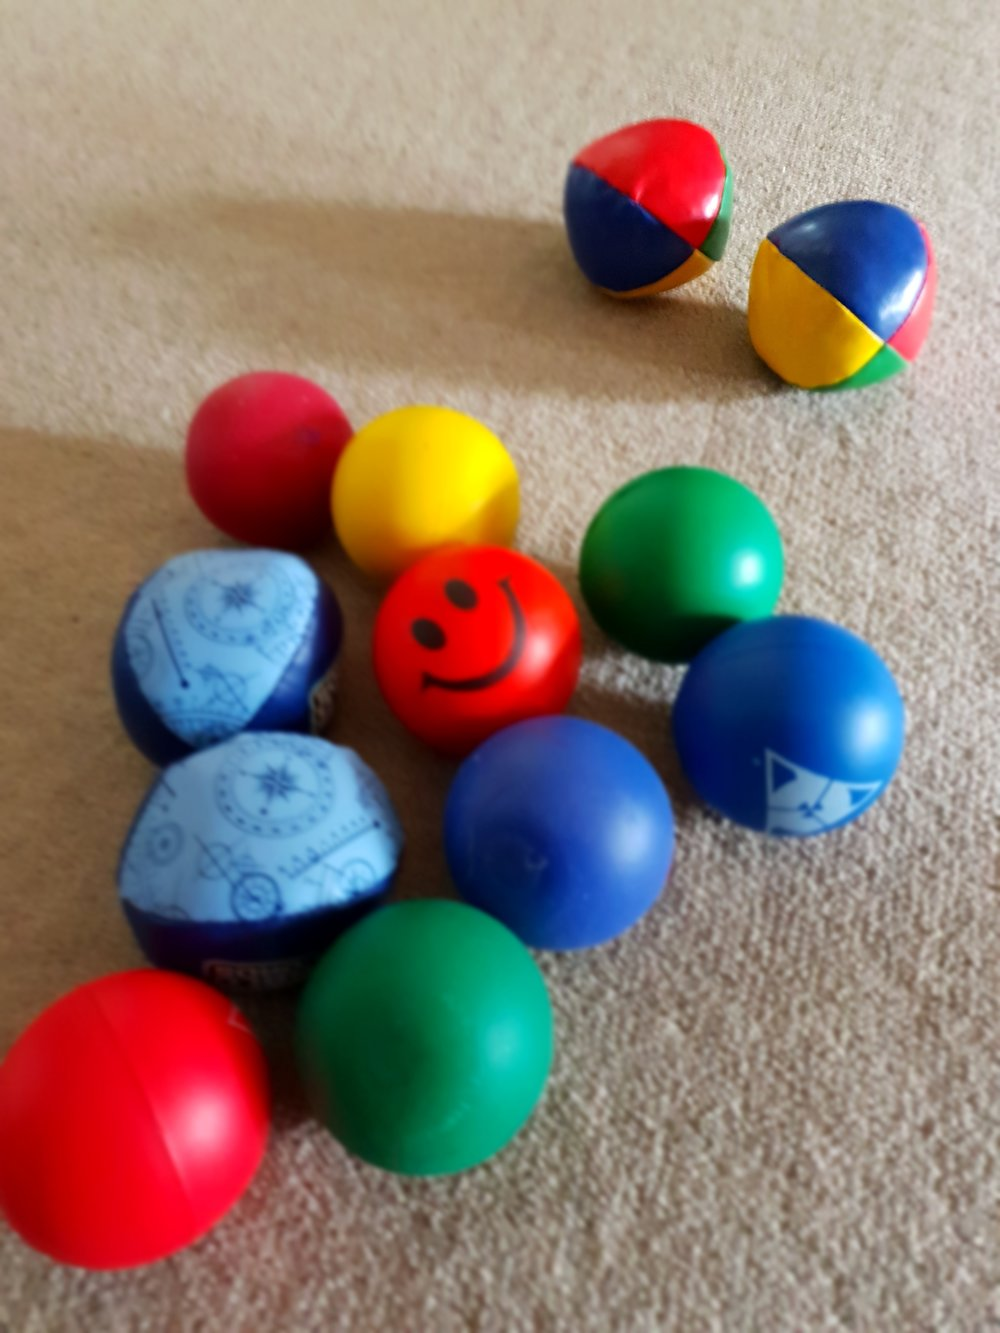 How many balls can you juggle? -